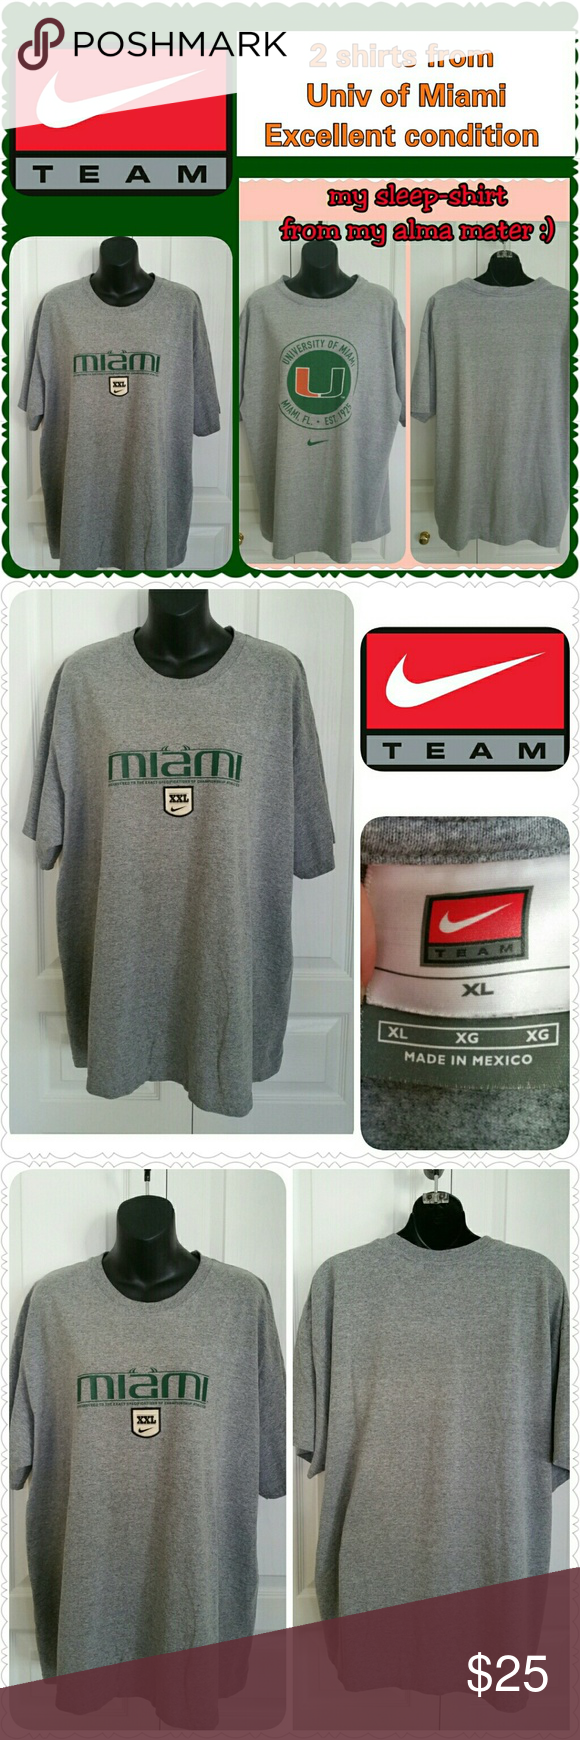 """2 NIKE Univ of Miami XL tees bundle, like new! Two NIKE tees, University of Miami  * Both size XL, unisex * Both gray * Both 23"""" across shoulders  * From my alma mater, like new! * Non-smoking home of Aurora33180 Nike Shirts Tees - Short Sleeve"""